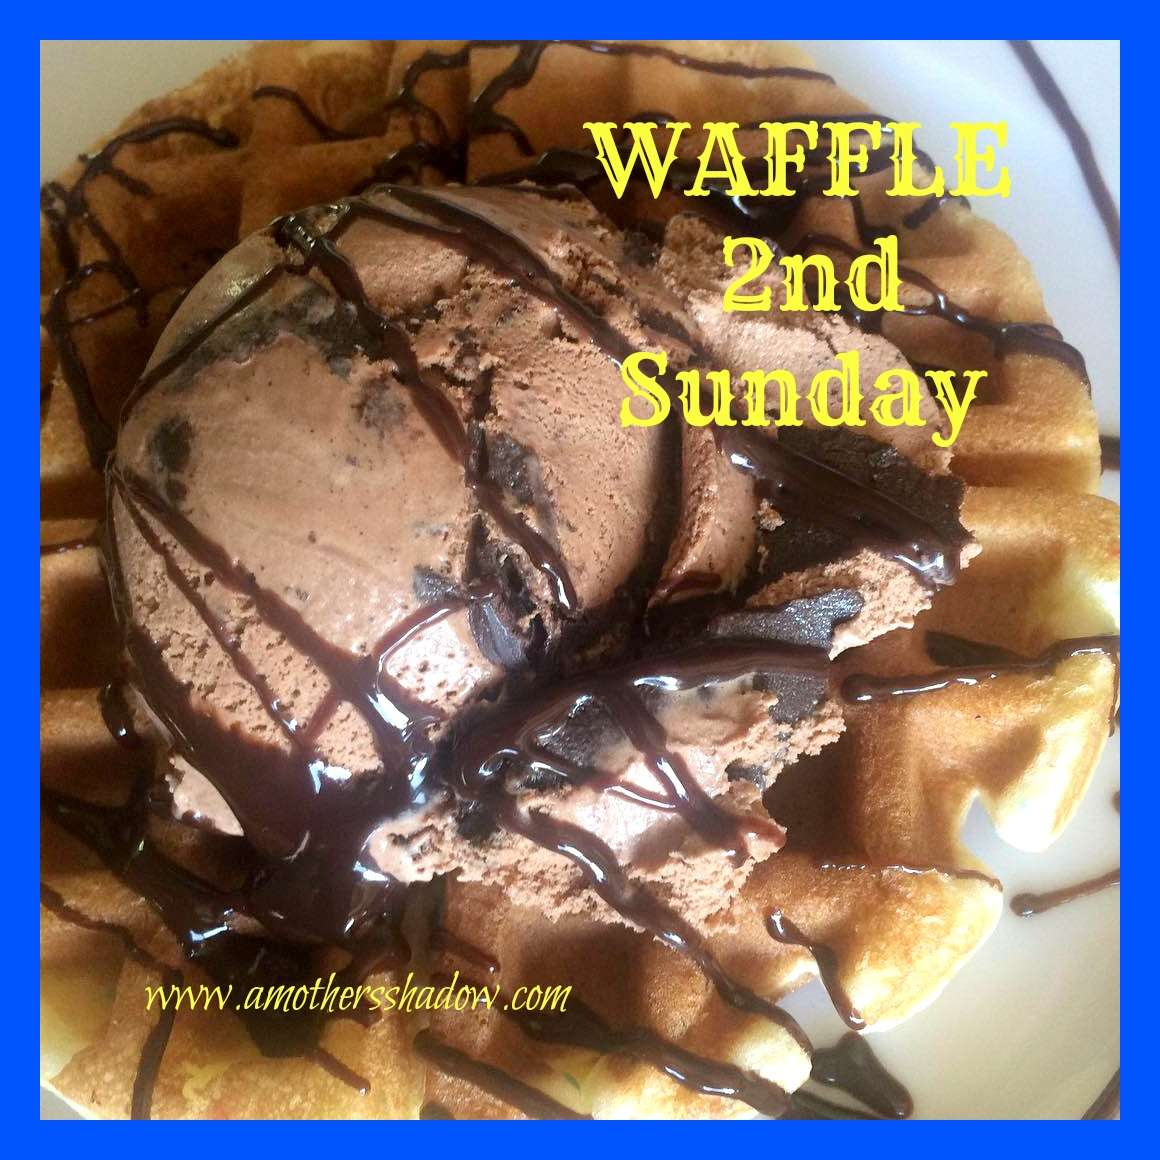 2nd Sunday Waffles